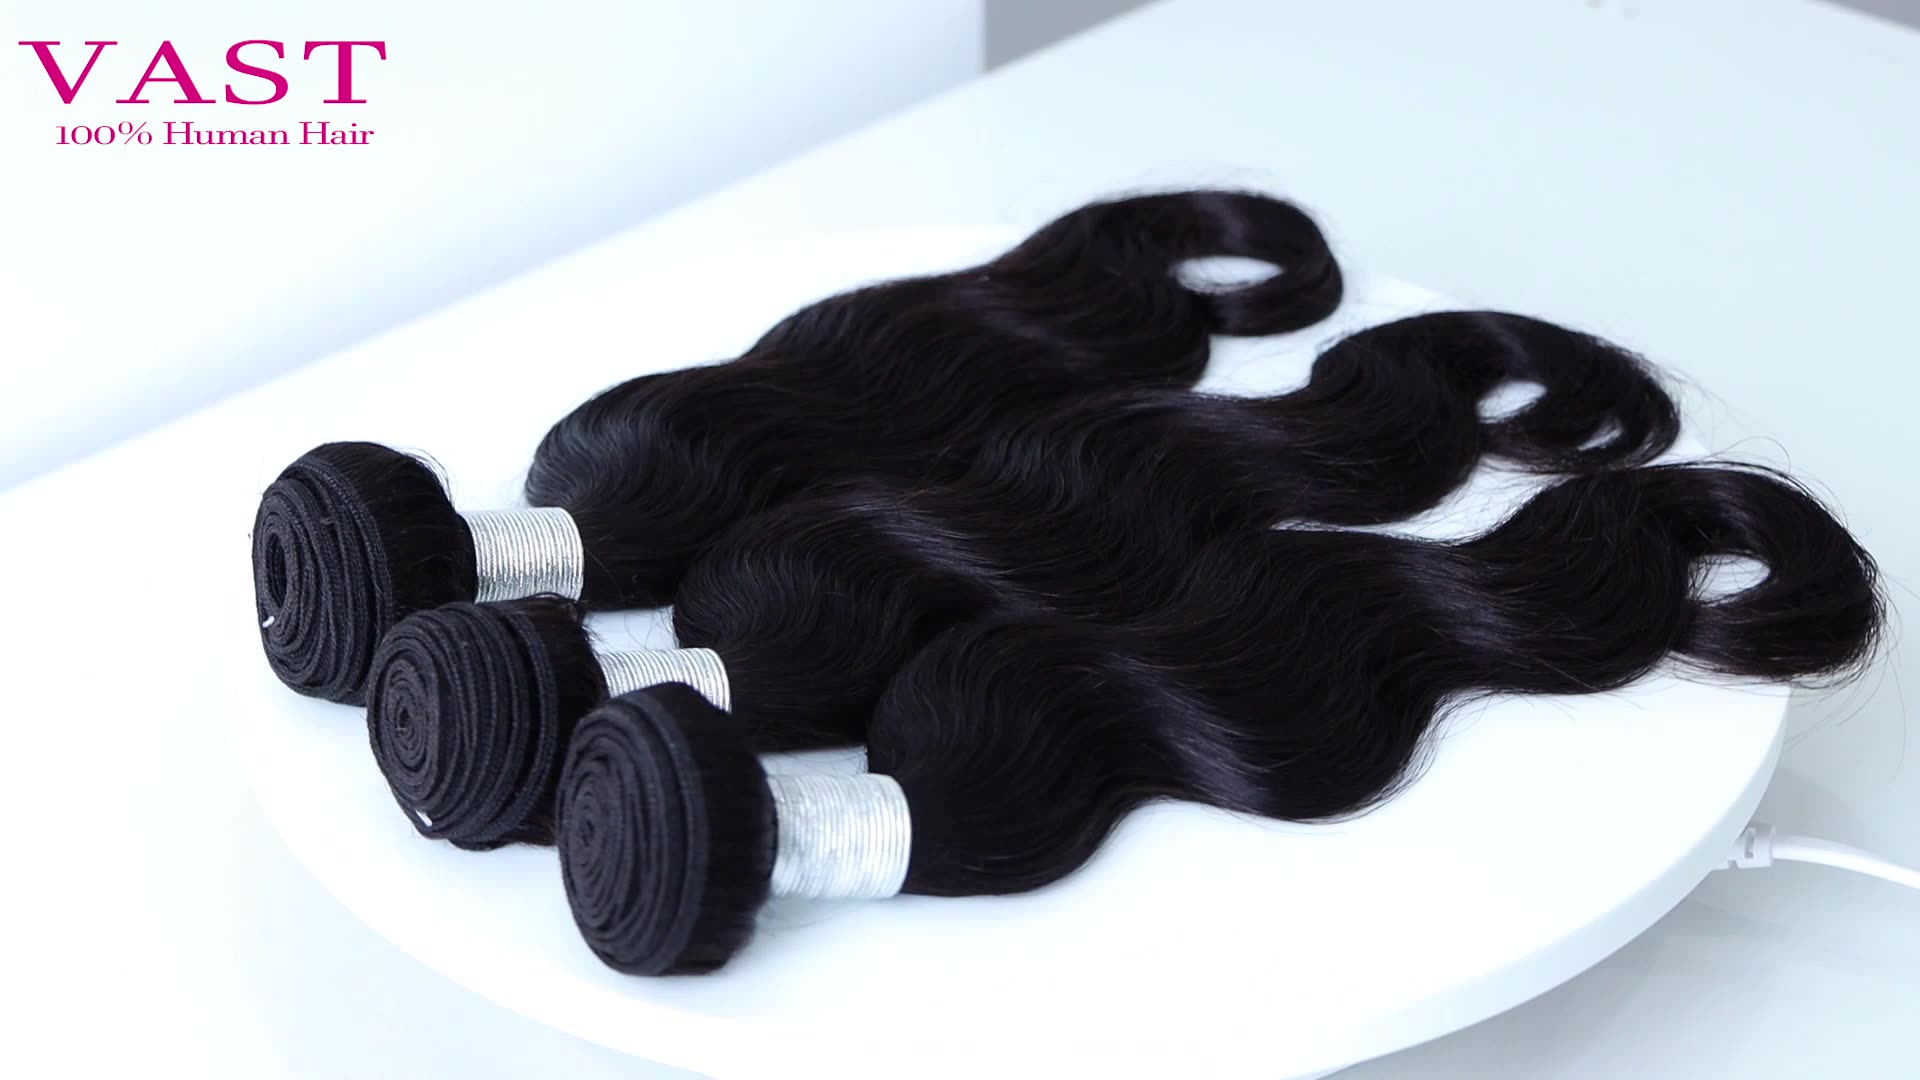 Factory Price Straight/Body Wave |Hair extension| Weave Raw Virgin Brazilian Human Virgin Hair bundles Remy For Black women